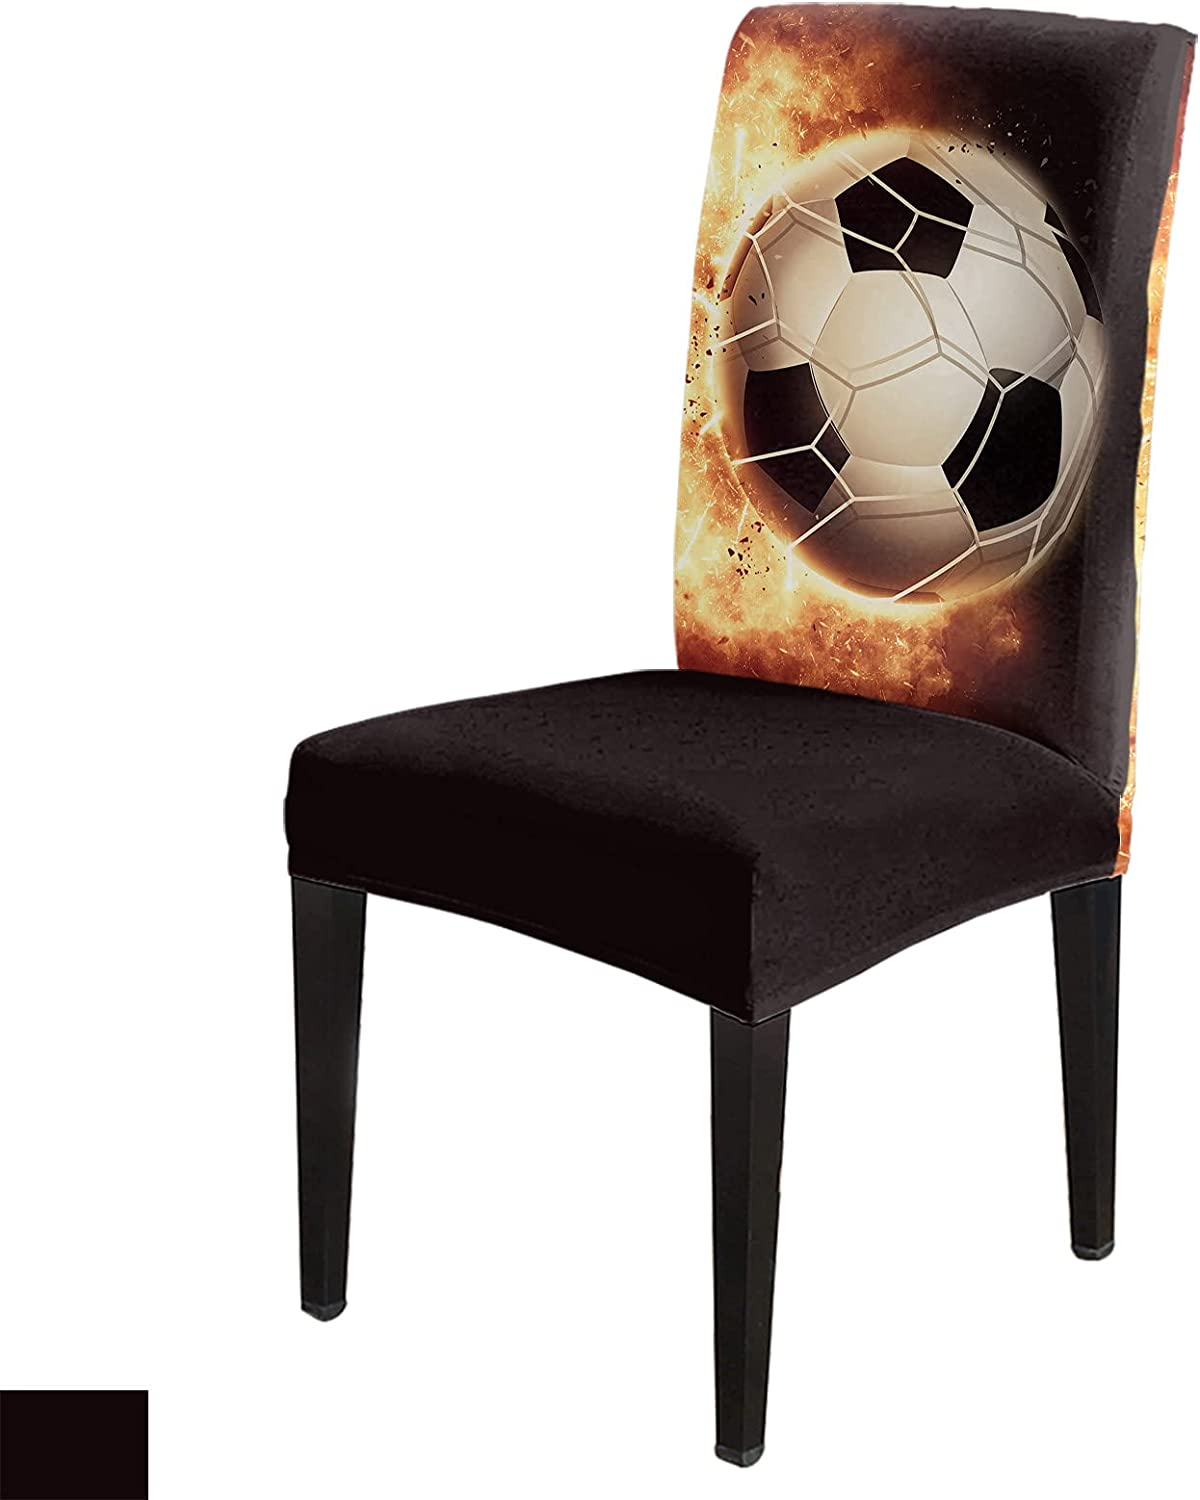 Football Arlington Mall with Fire Flames Dining Chair Se Room Slipcovers Max 63% OFF Covers